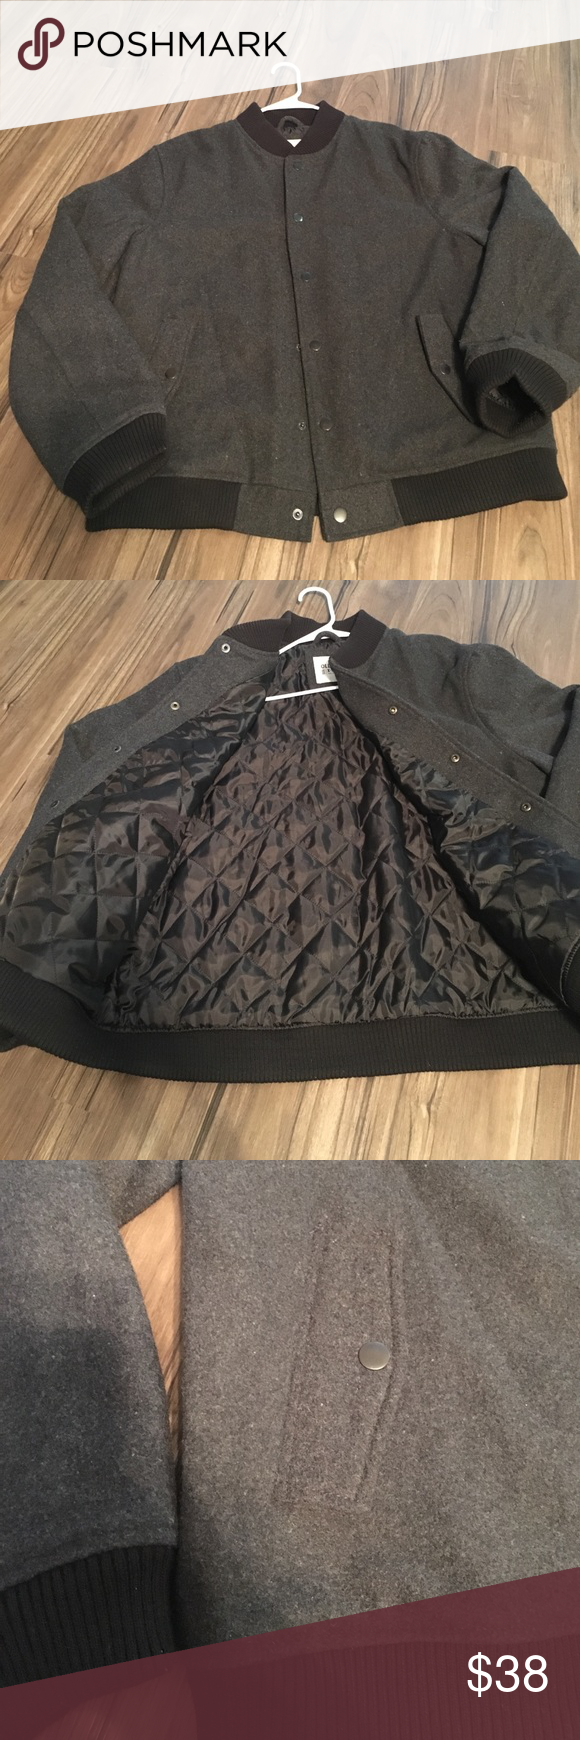 Bomber Jacket Charcoal Grey wool bomber jacket from old navy with Black around the wrists, collar and bottom of jacket. Buttons up the front. Inside lining black. Old Navy Jackets & Coats Bomber & Varsity